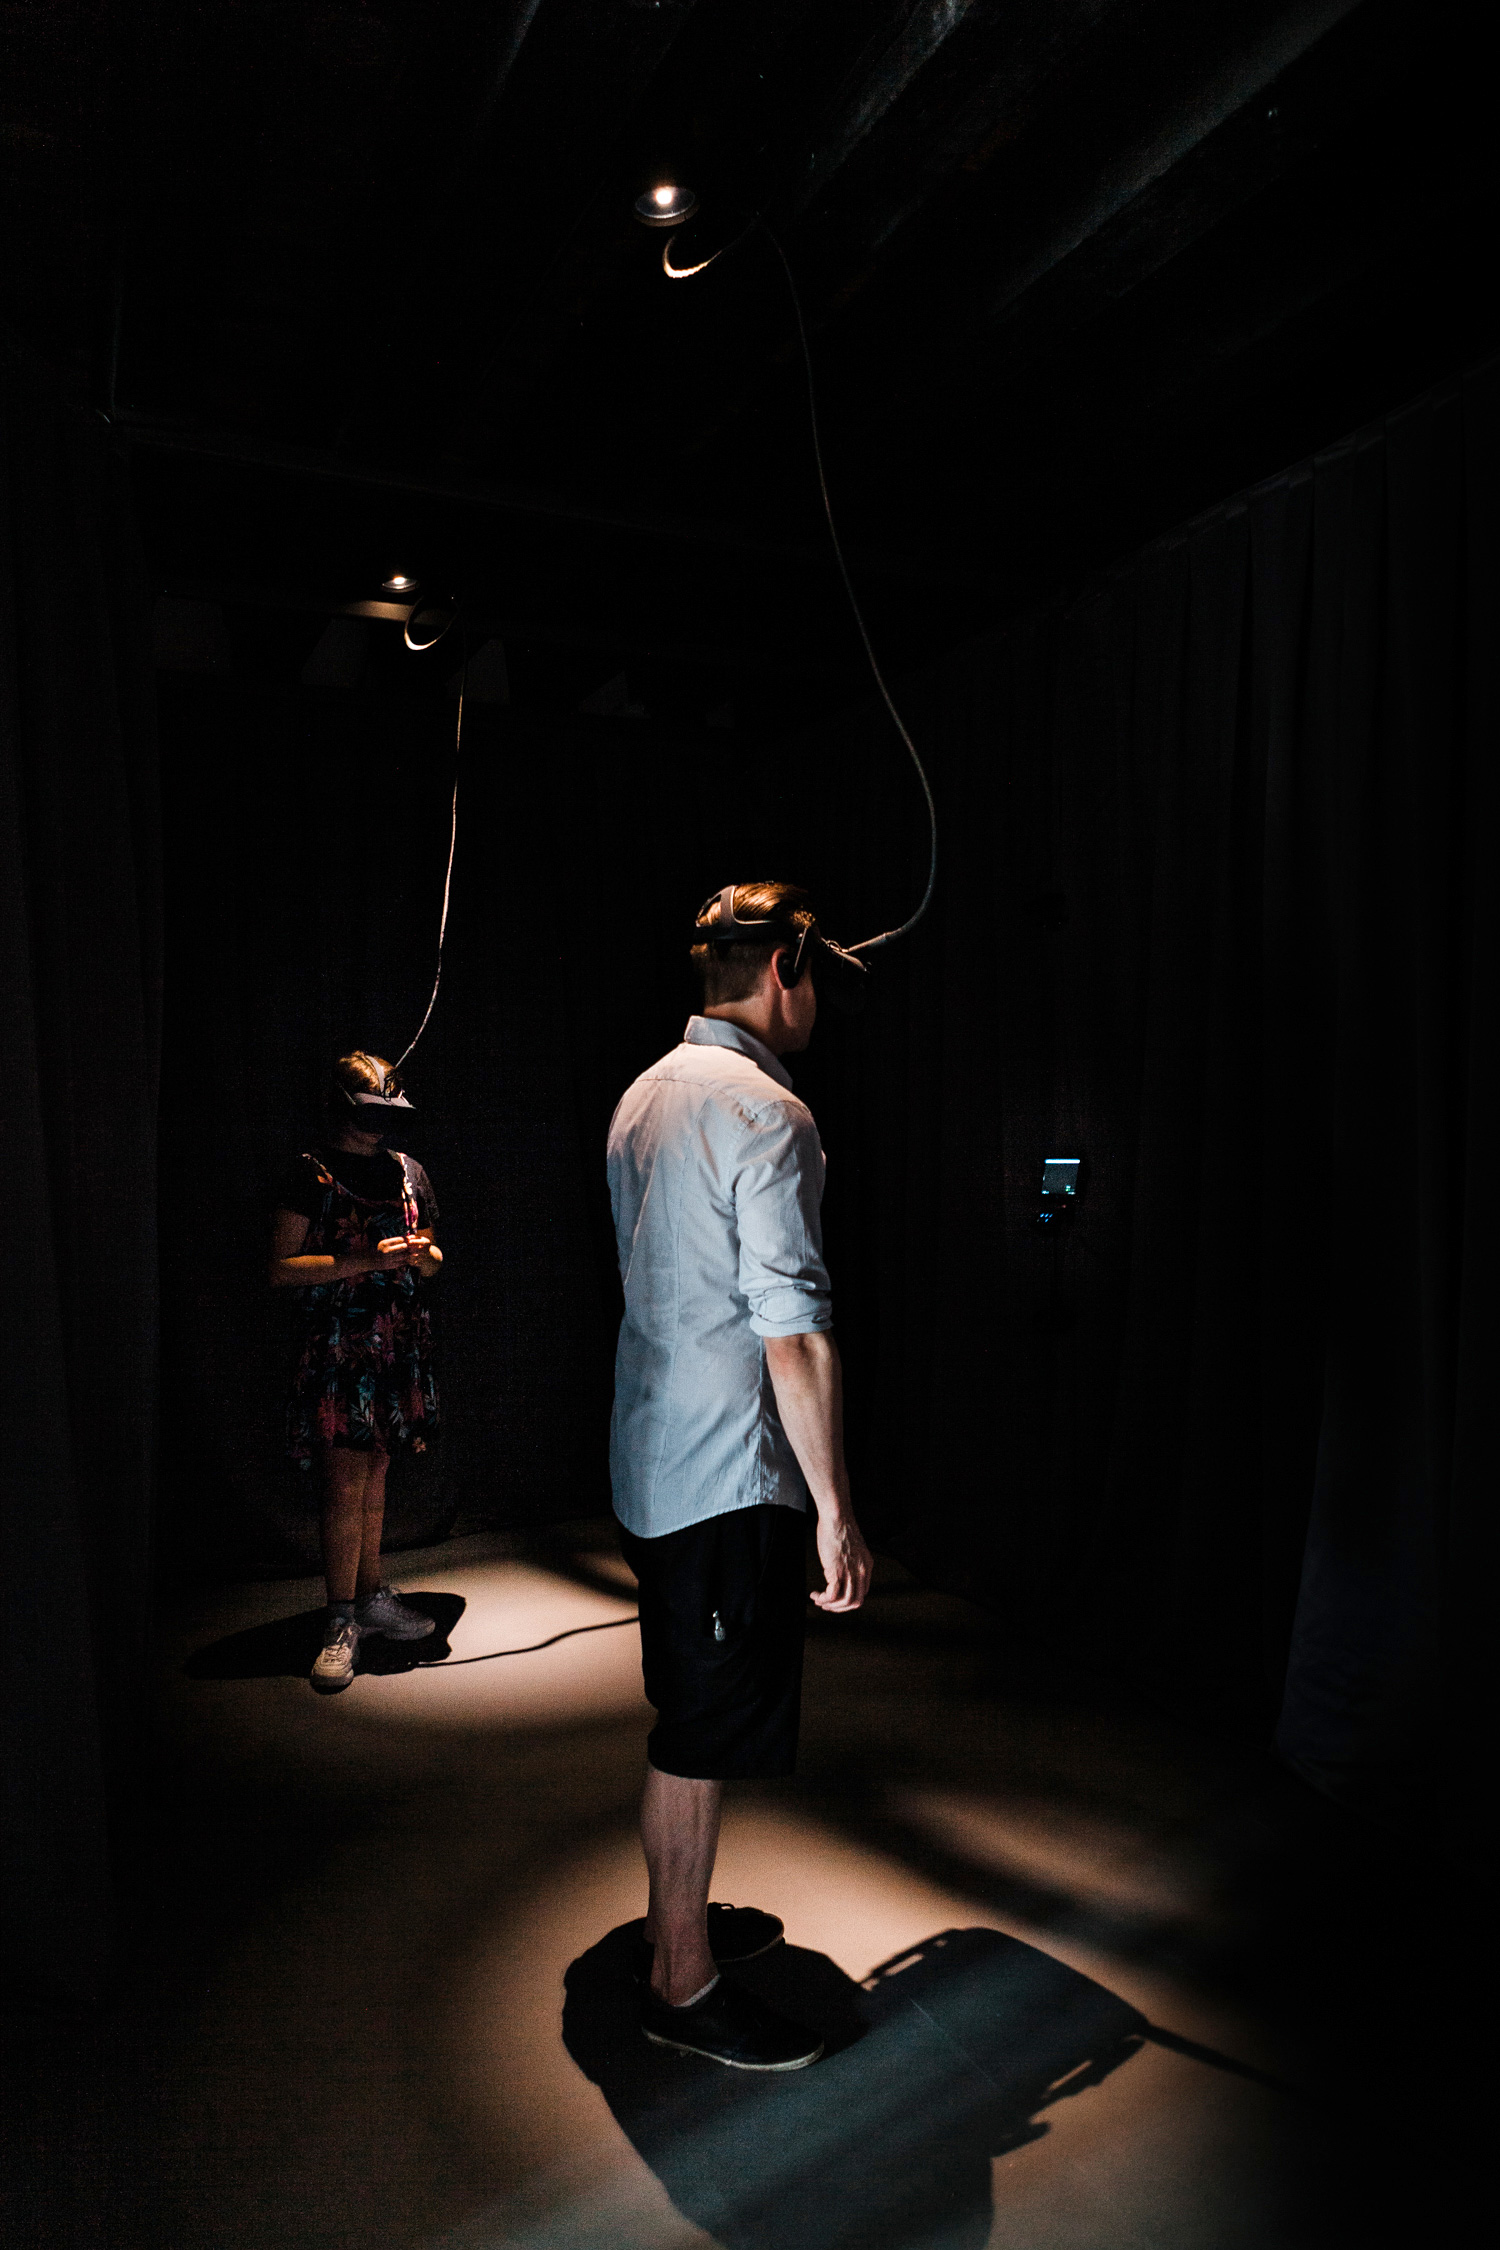 Gloomy Eyes, directed by Jorge Tereso and Fernando Maldonado, produced by Atlas V, 3DAR, Arte, RYOT and HTC Vive | Theatre of Virtuality | STIR